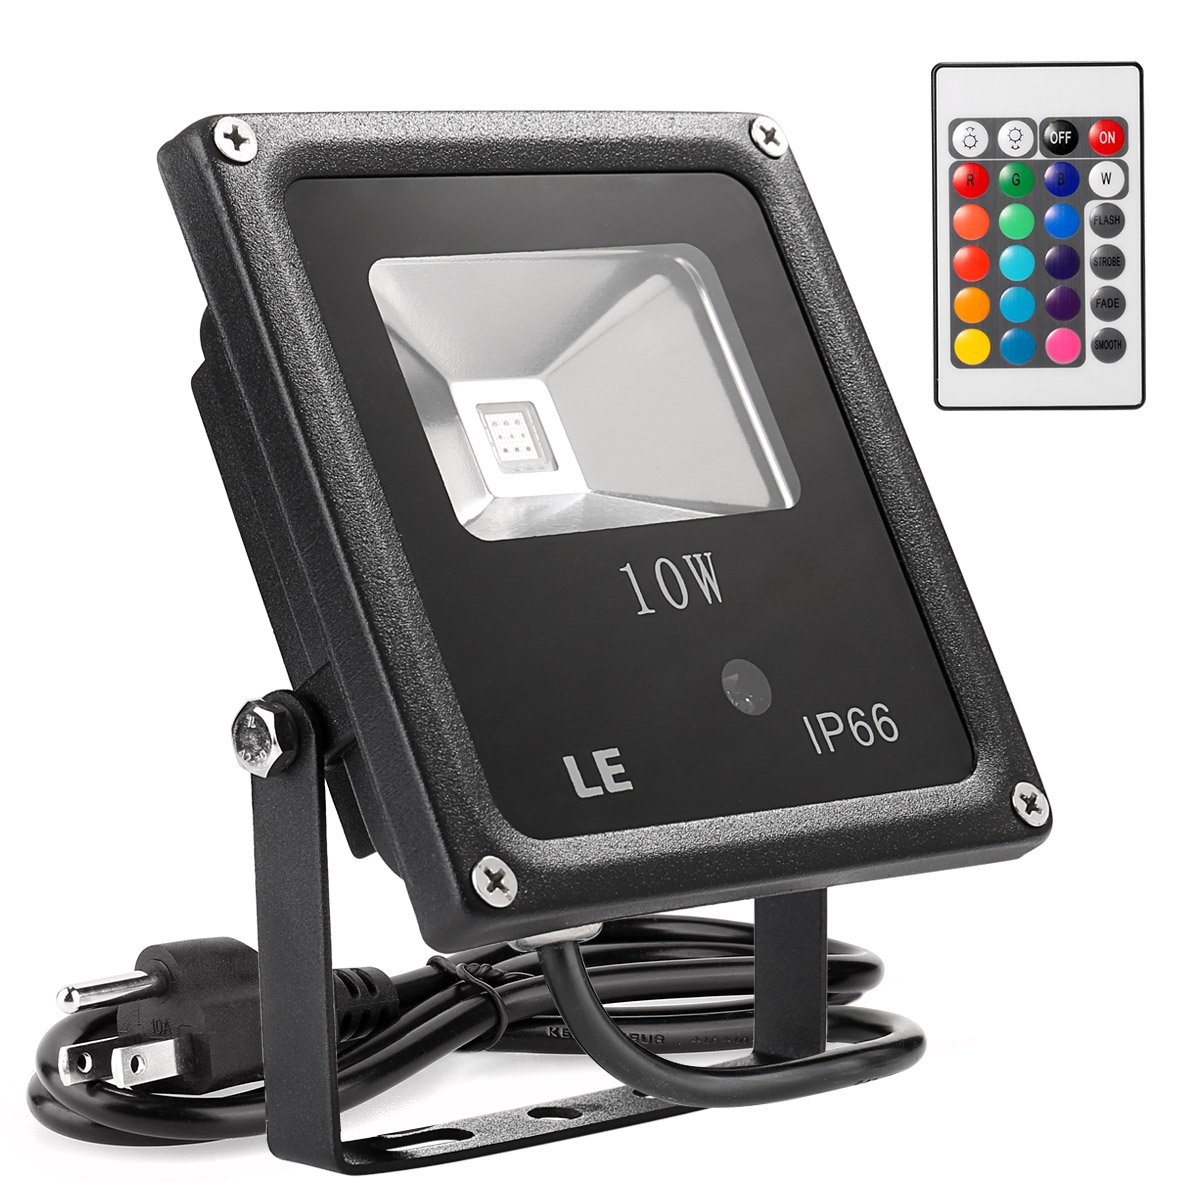 Le 10w rgb led flood lights outdoor color changing security light le 10w rgb led flood lights outdoor color changing security light 16 colors 4 modes with remote control ip66 waterproof floodlight us 3 plug aloadofball Image collections